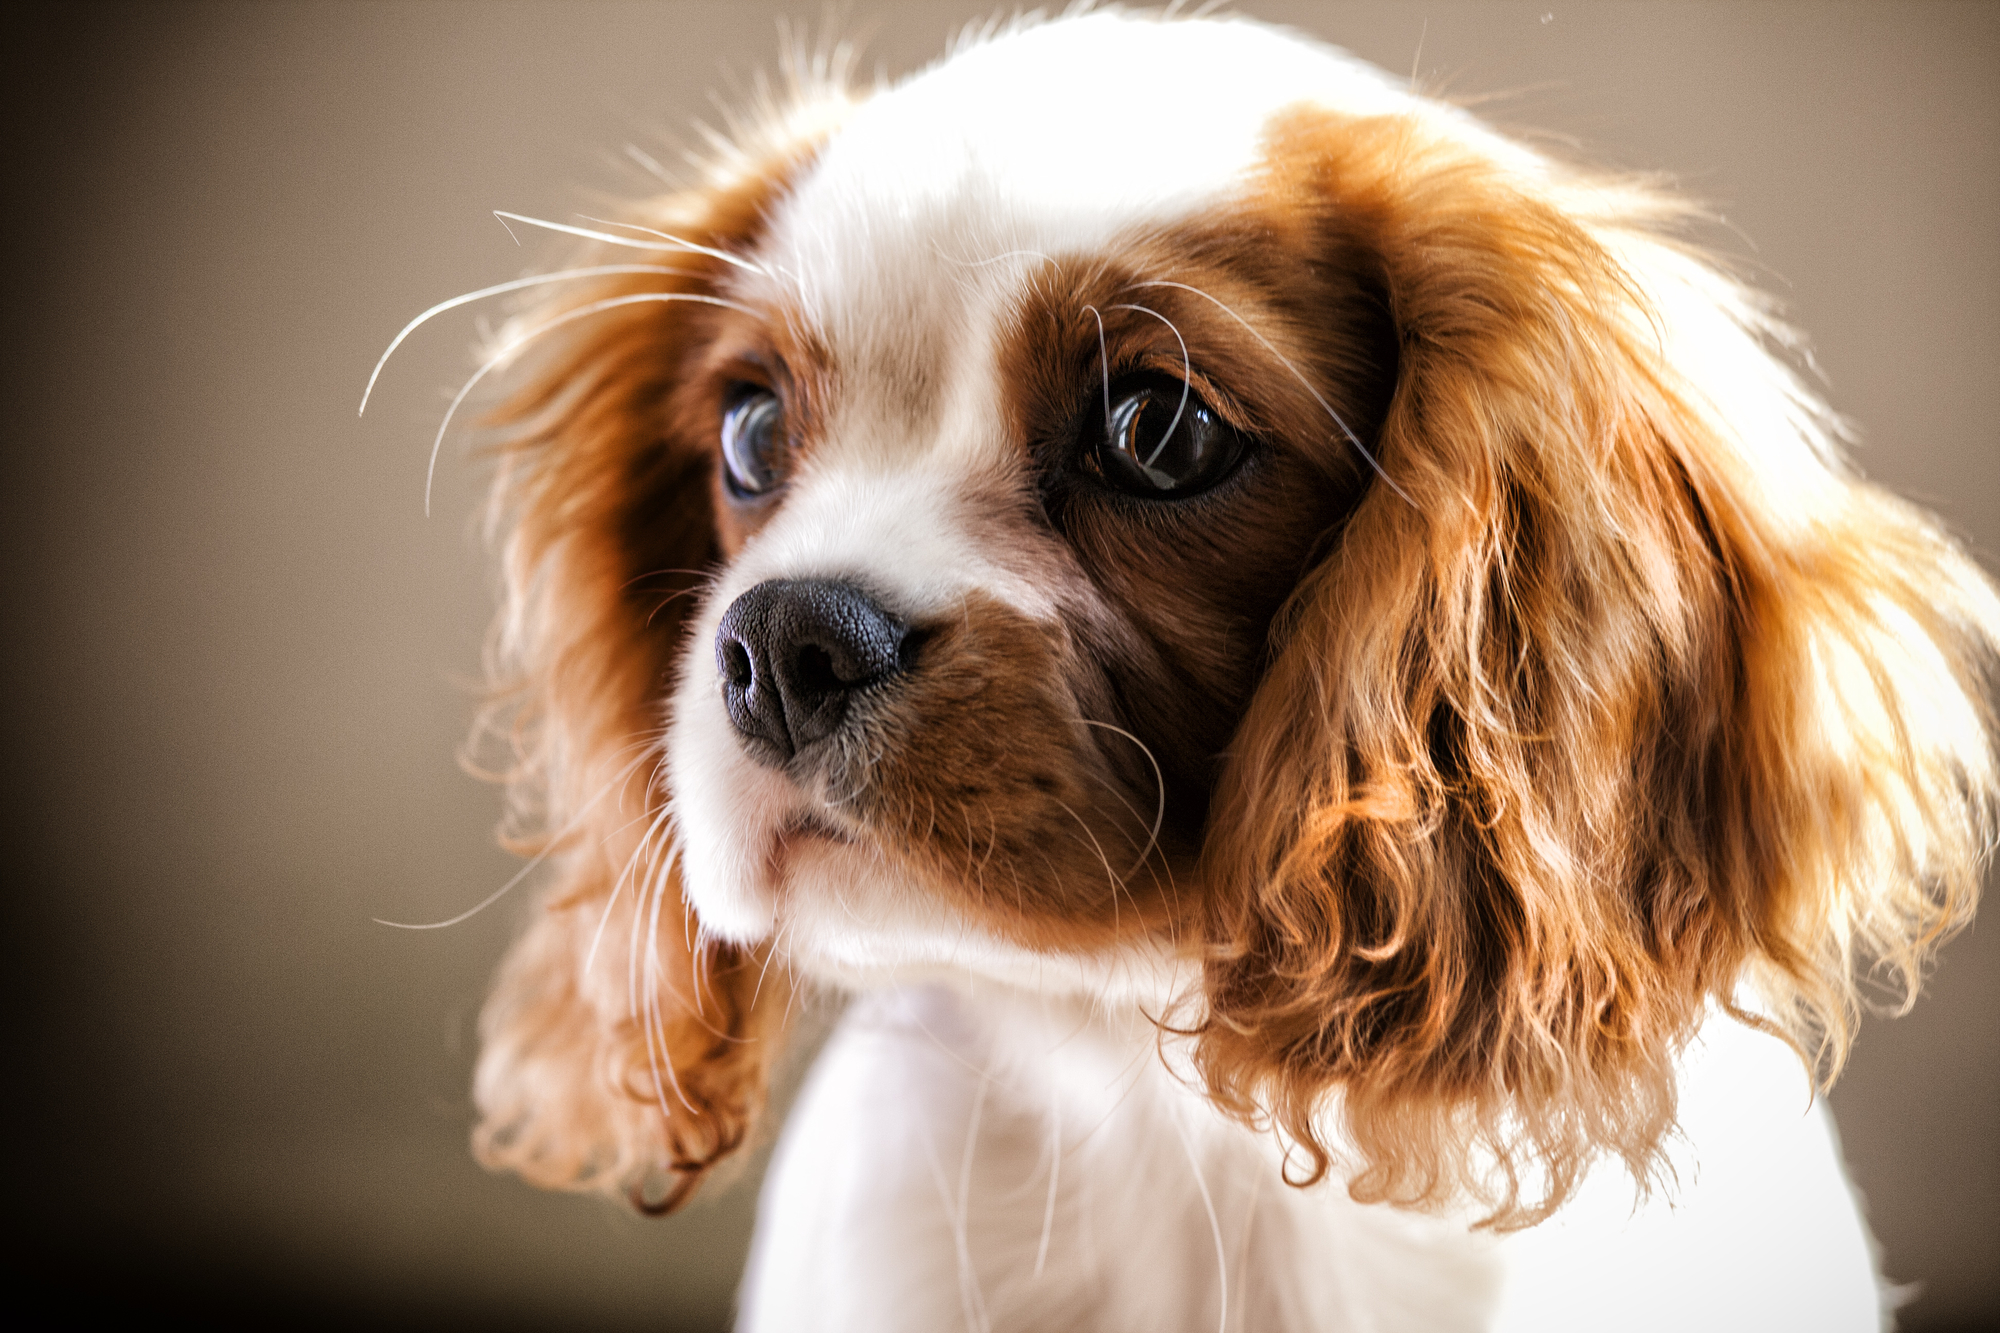 Best natural dog food for cavalier king charles spaniels barkspace what size crate for a cavalier king charles spaniel best dog crate and guidelines nvjuhfo Choice Image